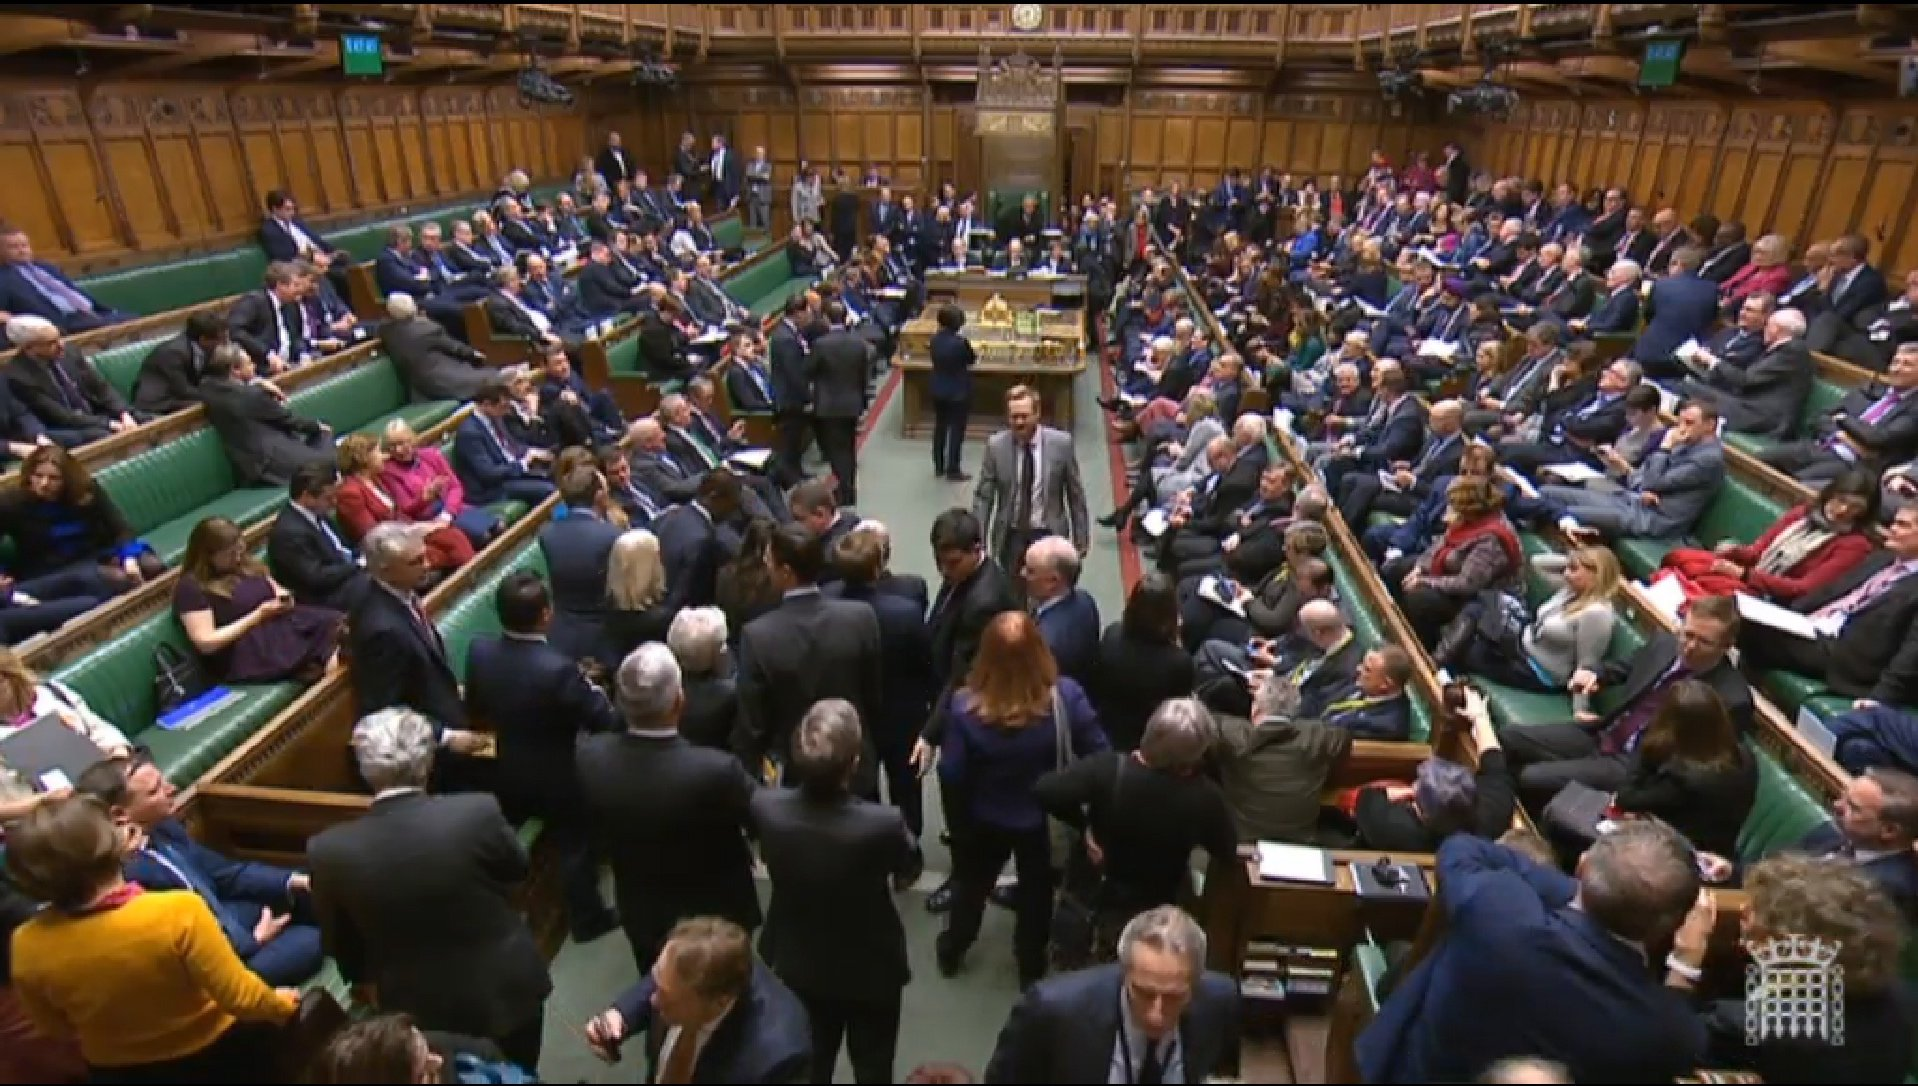 epa07370156 A handout video-grabbed still image from a video made available by the UK Parliamentary Recording Unit shows MPs in the House of Commons following a vote on Prime Minister May's Brexit strategy in London, Britain, 14 February 2019. EPA/PARLIAMENTARY RECORDING UNIT HANDOUT MANDATORY CREDIT: PARLIAMENTARY RECORDING UNIT HANDOUT EDITORIAL USE ONLY/NO SALES